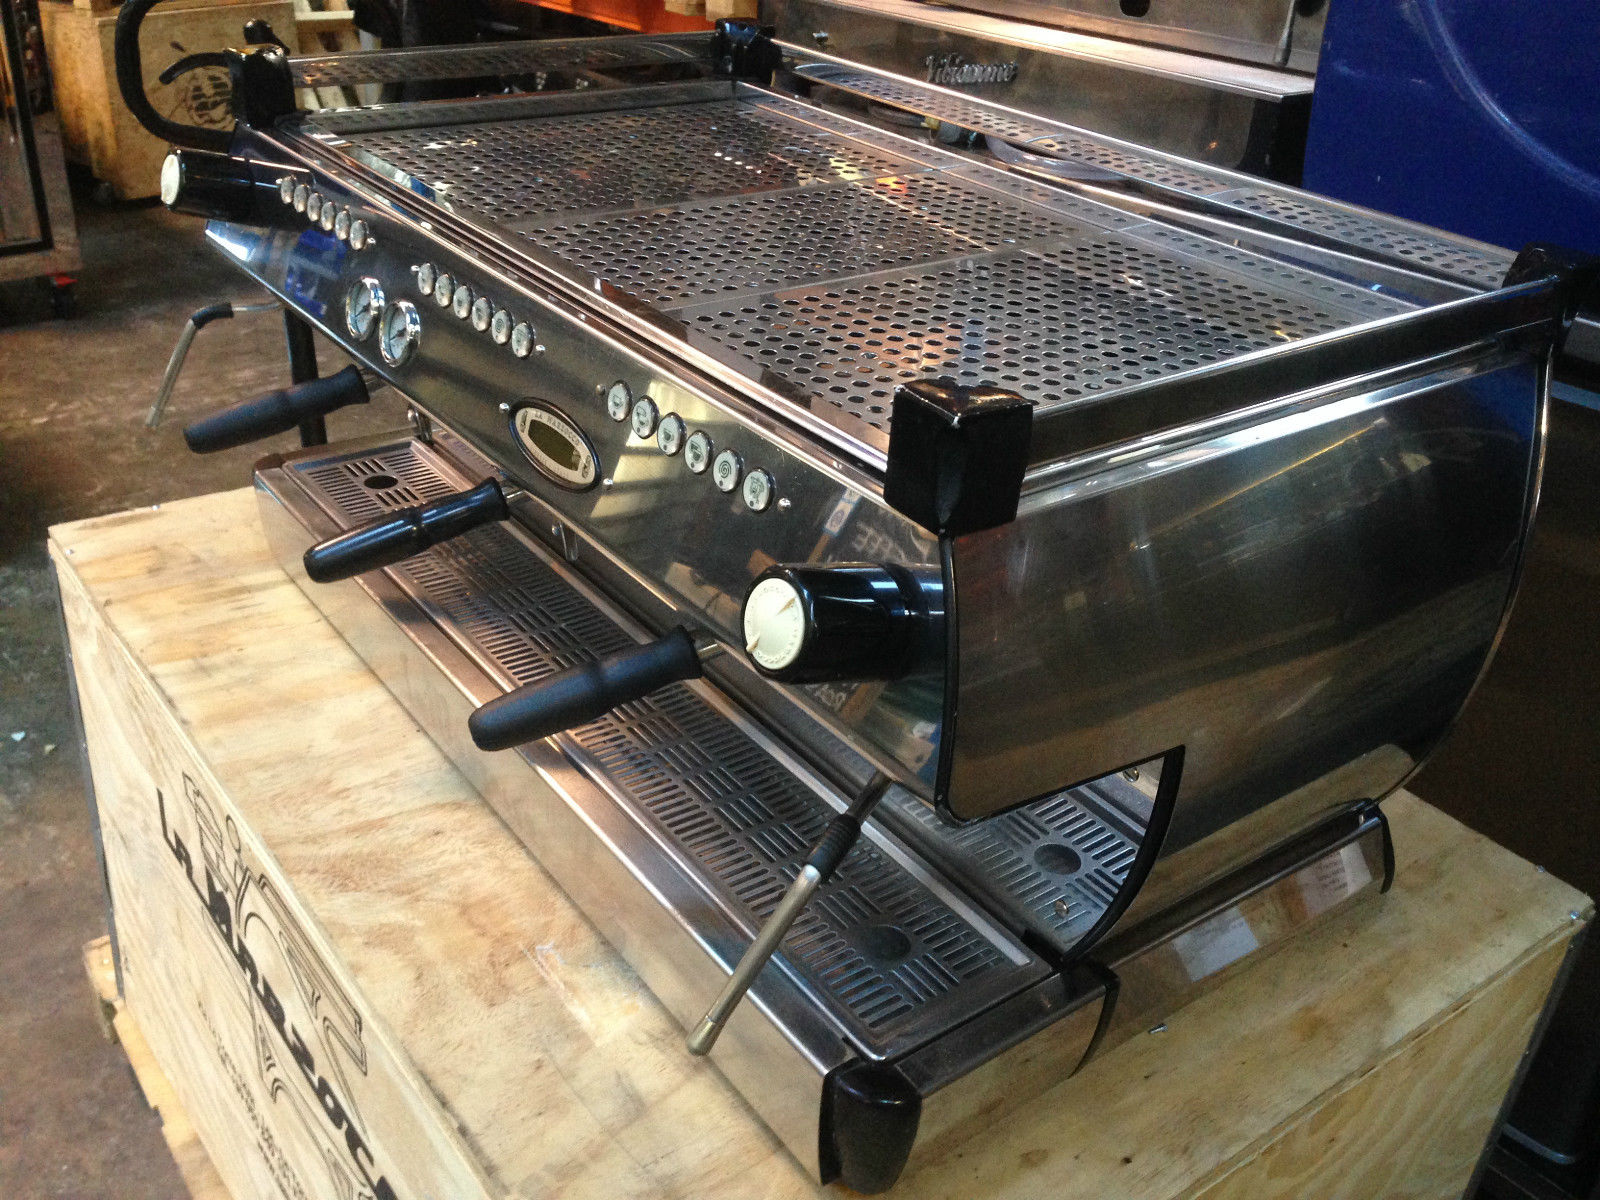 Photo La Marzocco GB5 3 Group Espresso Coffee Machine